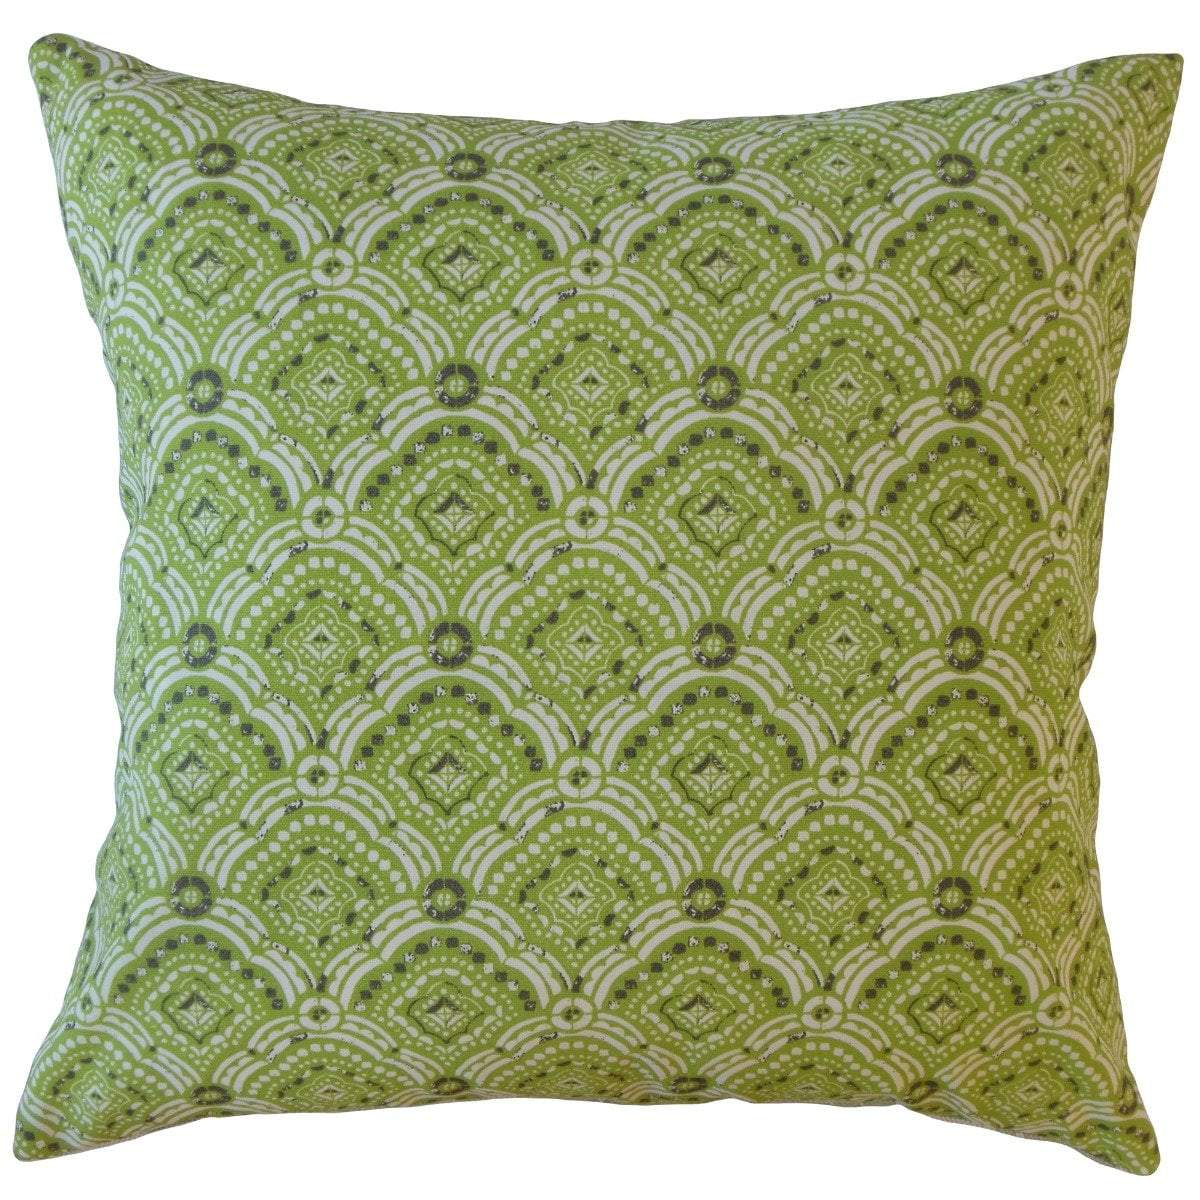 Torres Throw Pillow Cover